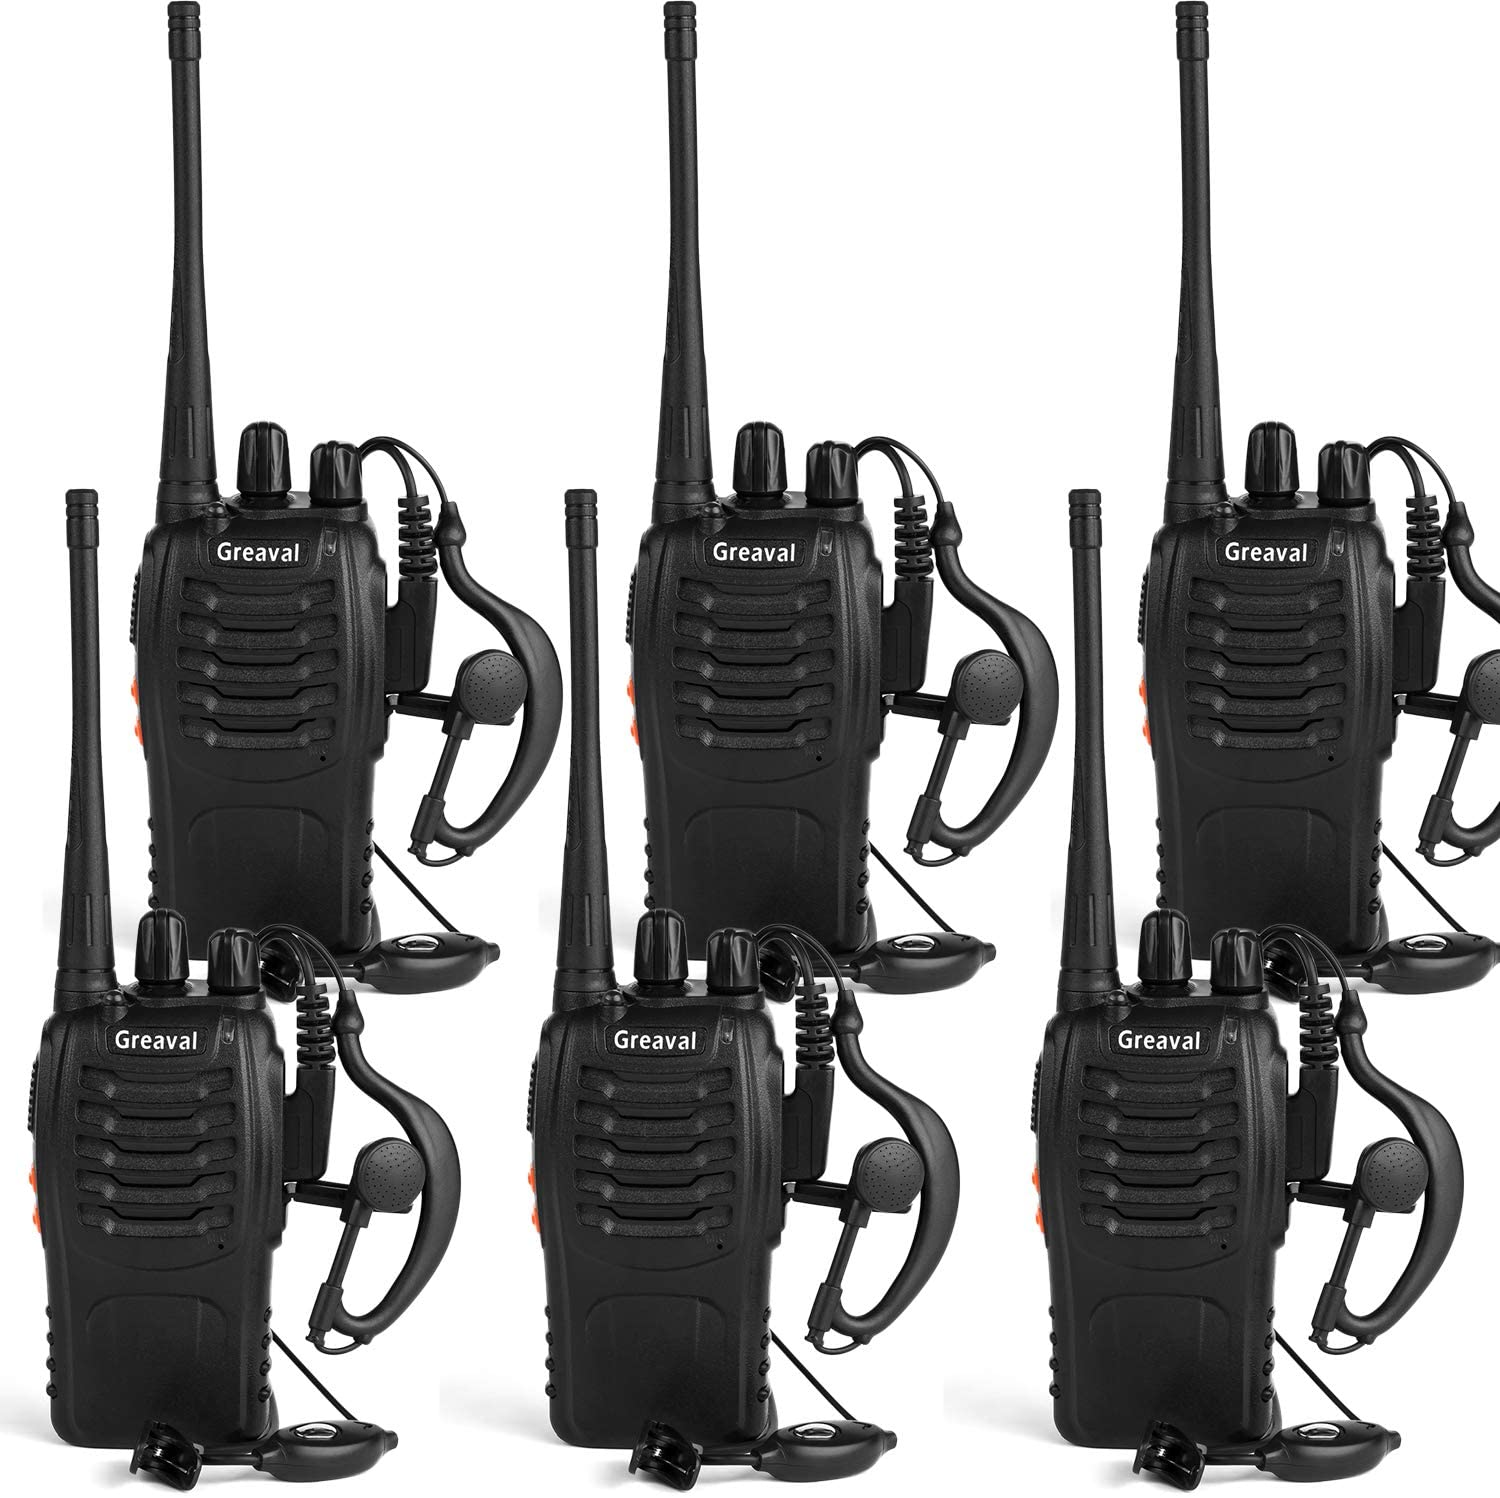 Greaval Long Range Walkie Talkies Rechargeable Two-Way Radios with Earpiece 16-Channel UHF 400-470MHz (Pack of 6)